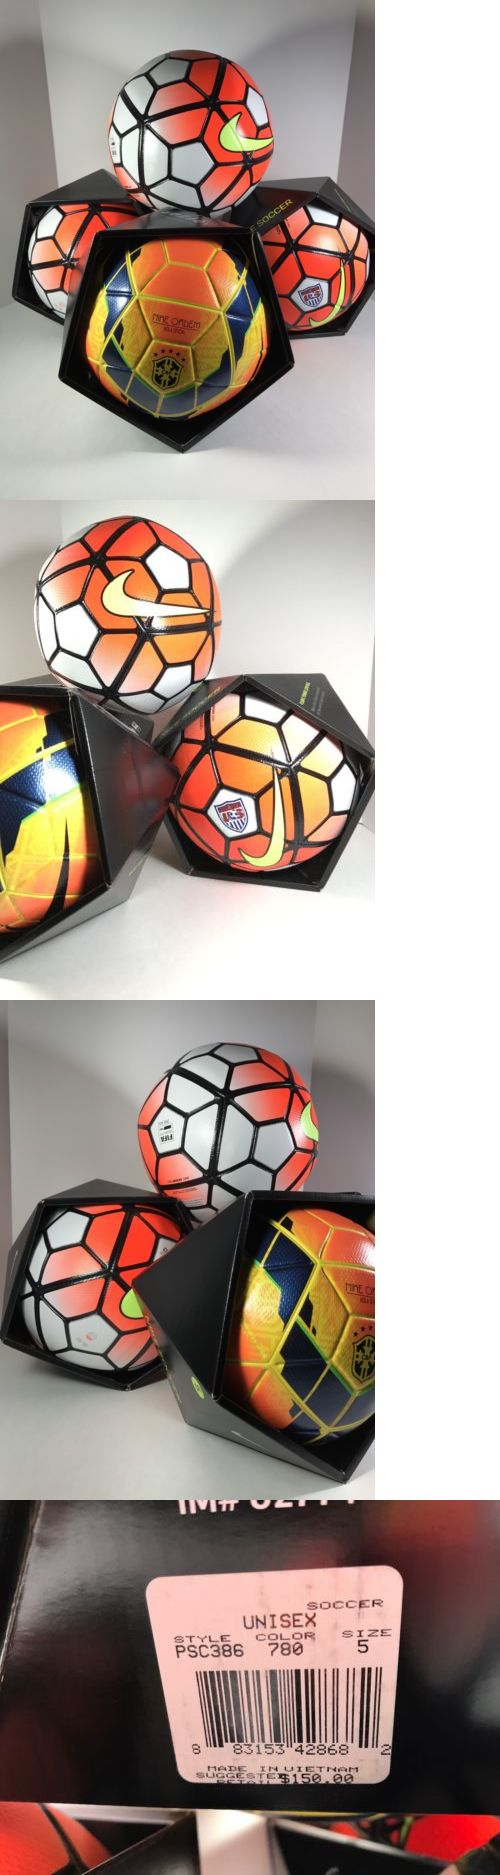 Balls 20863: Nike Ordem 1 3 Soccer Balls Size 5 Lot Of 4 New Fifa Official Football Match -> BUY IT NOW ONLY: $199 on eBay!